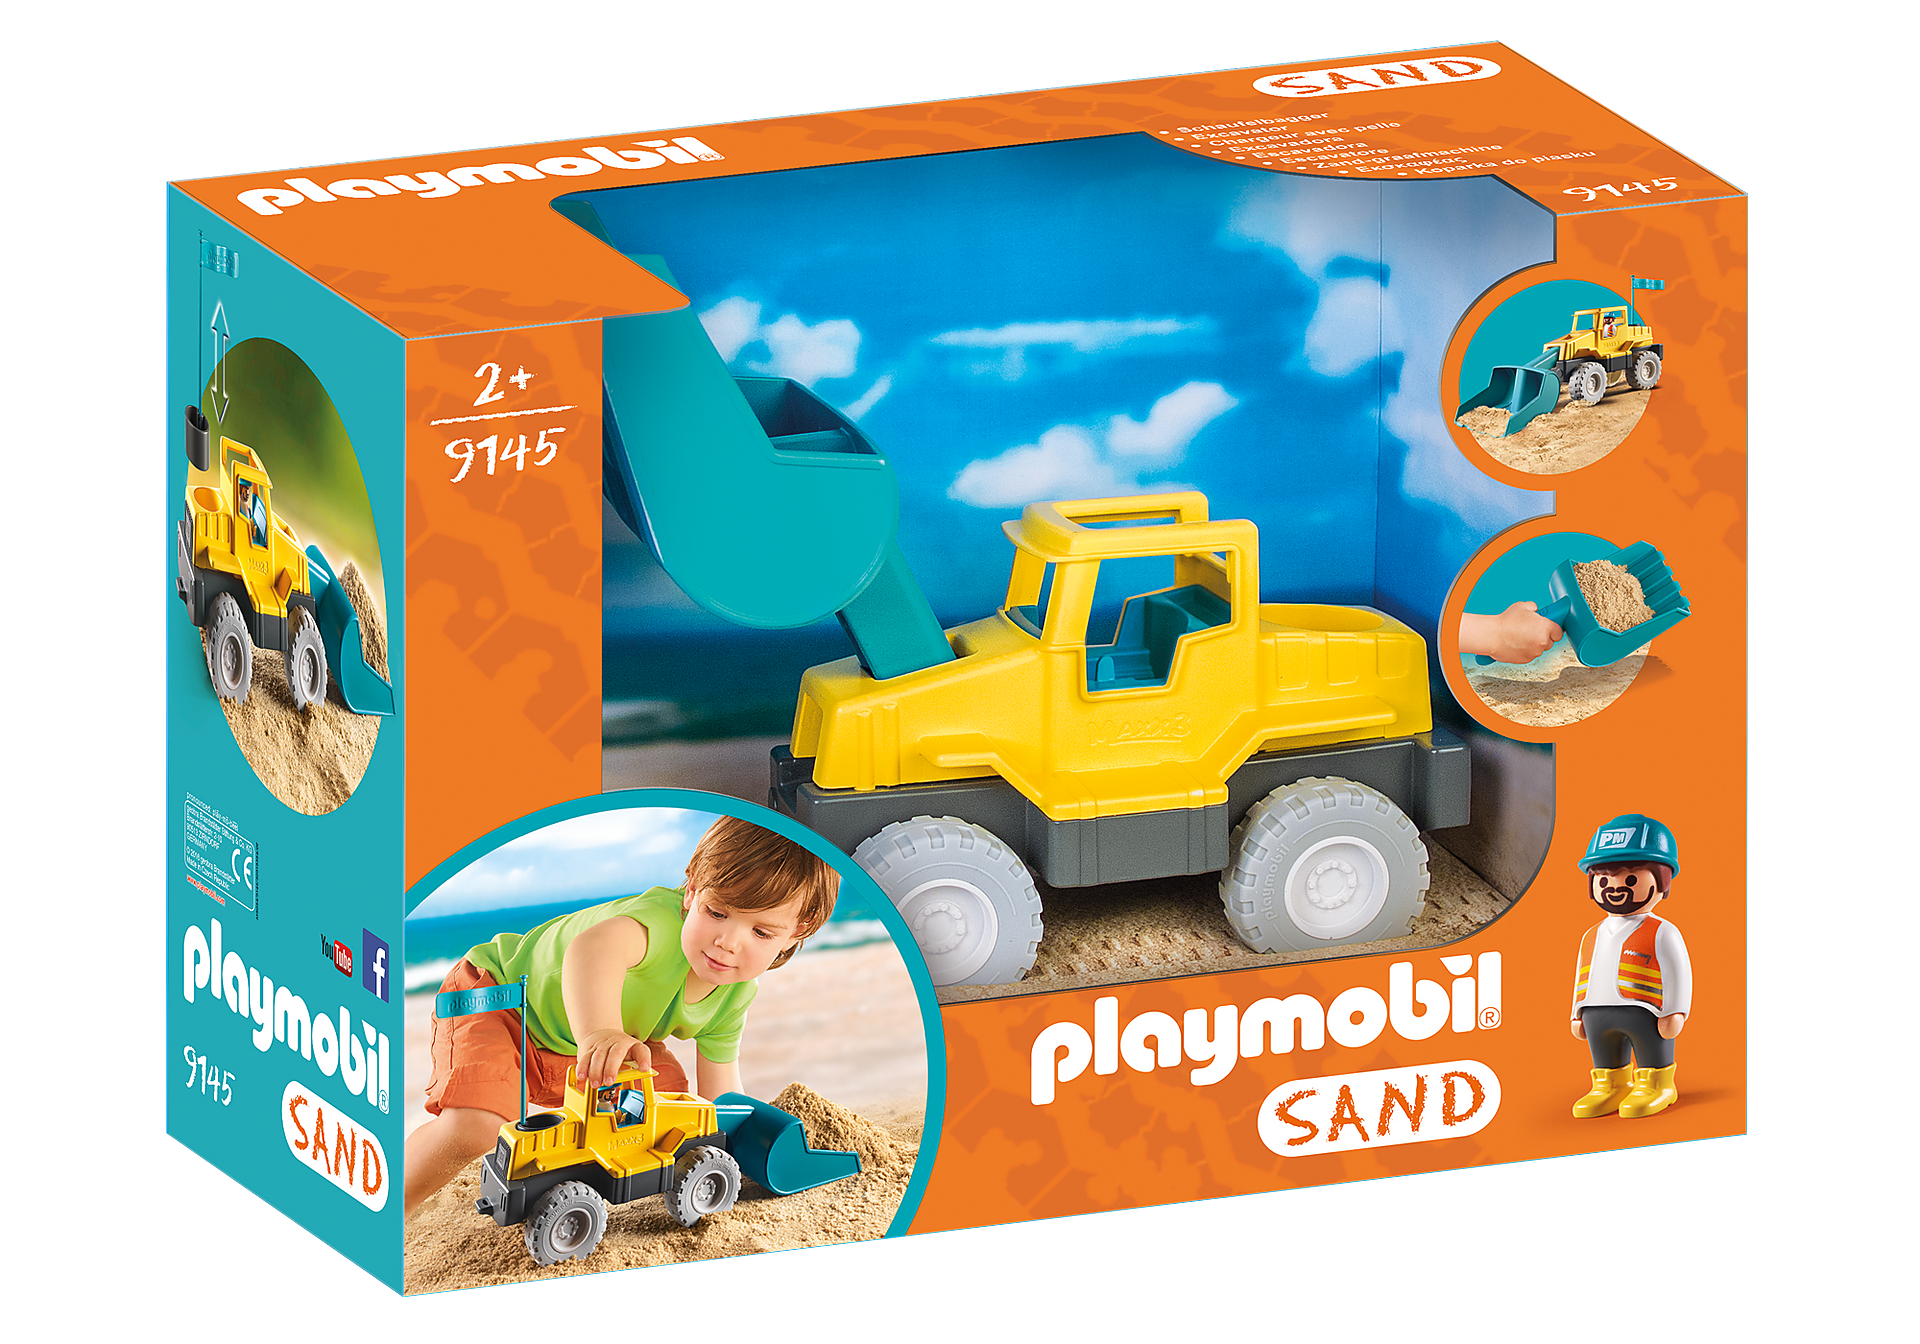 http://media.playmobil.com/i/playmobil/9145_product_box_front/Koparka do piasku